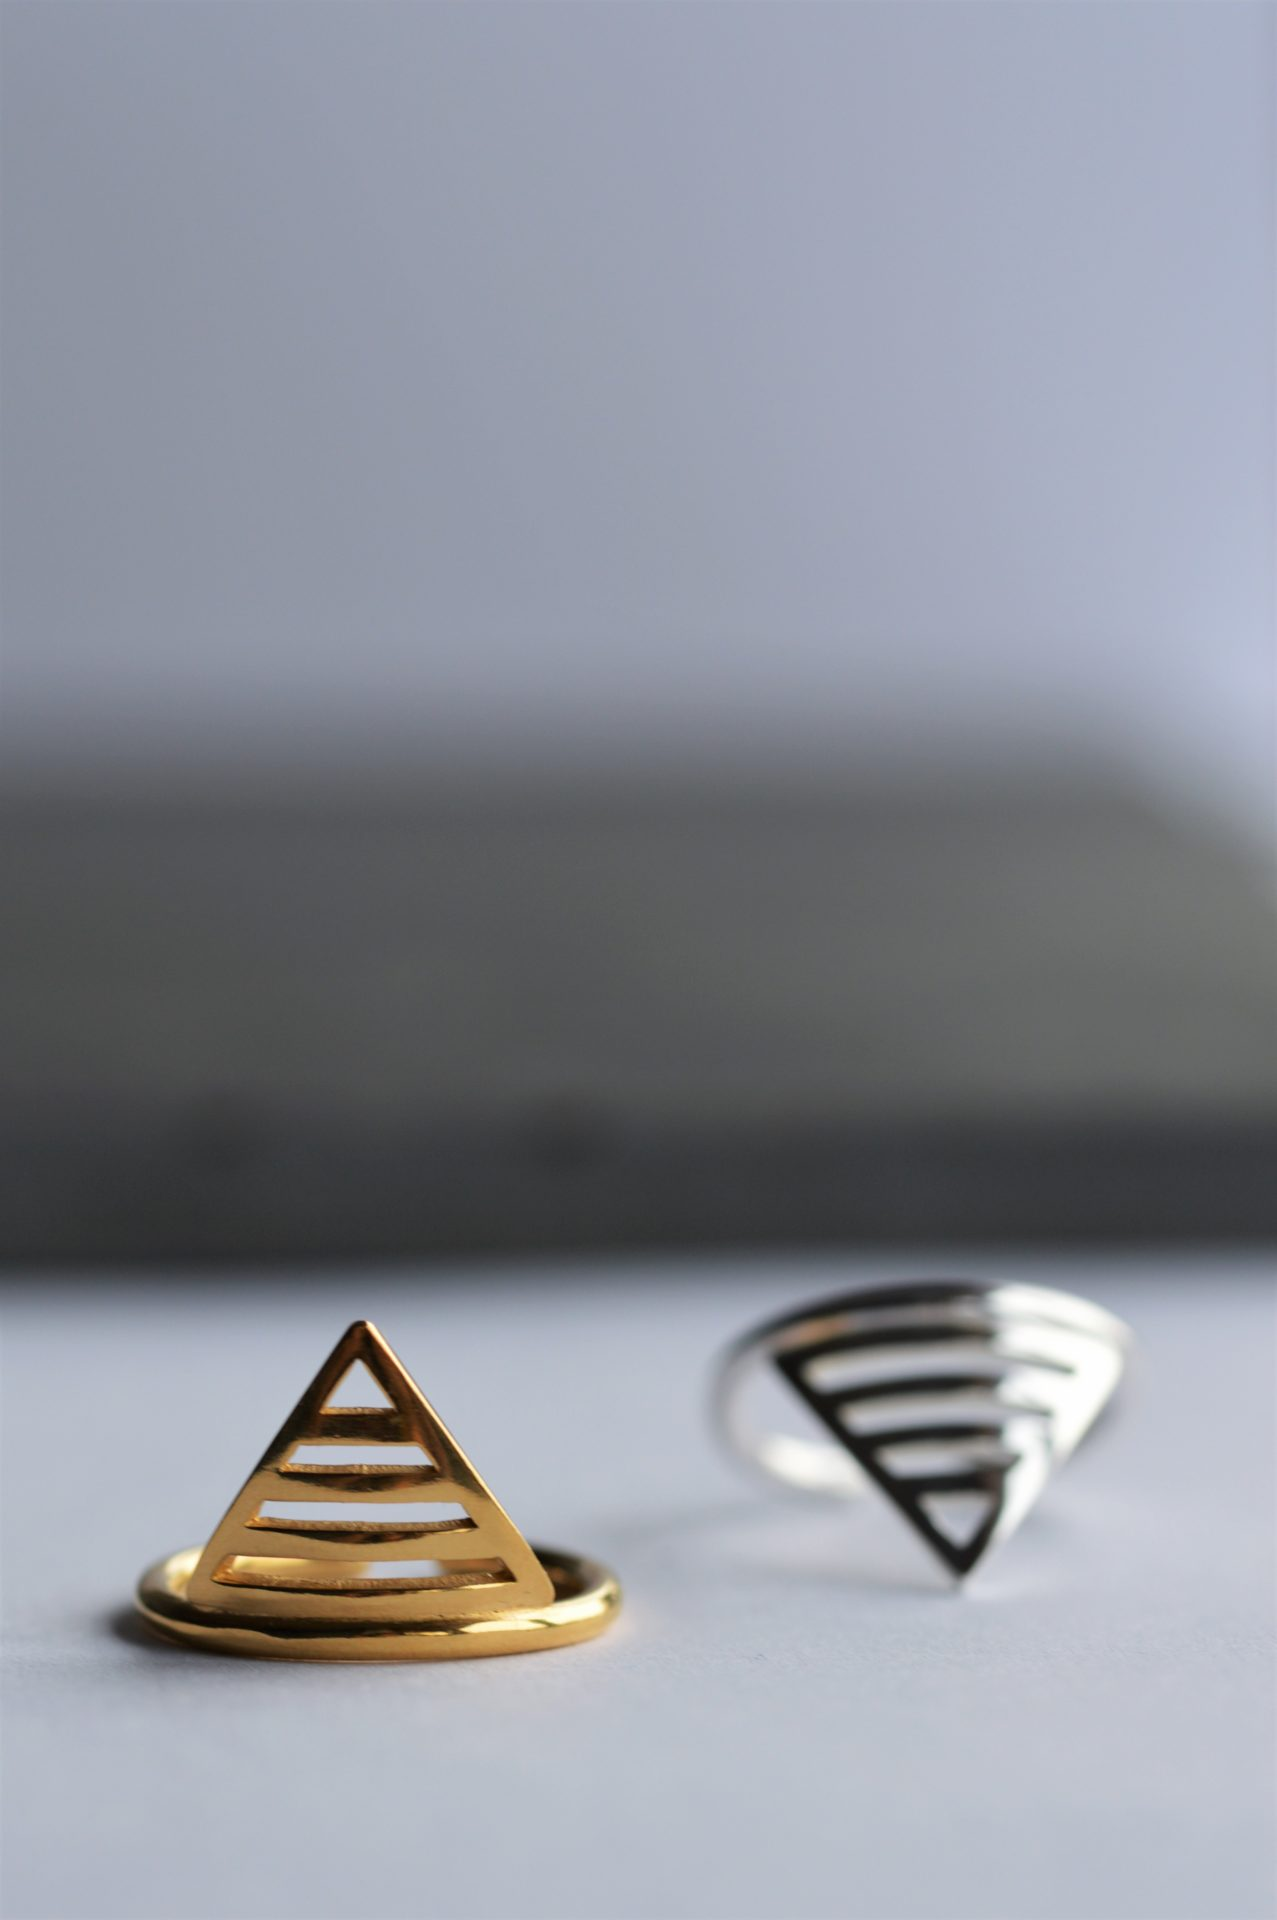 Katherine Barber 1 silver ring and 1 gold ring in the shape of triangles